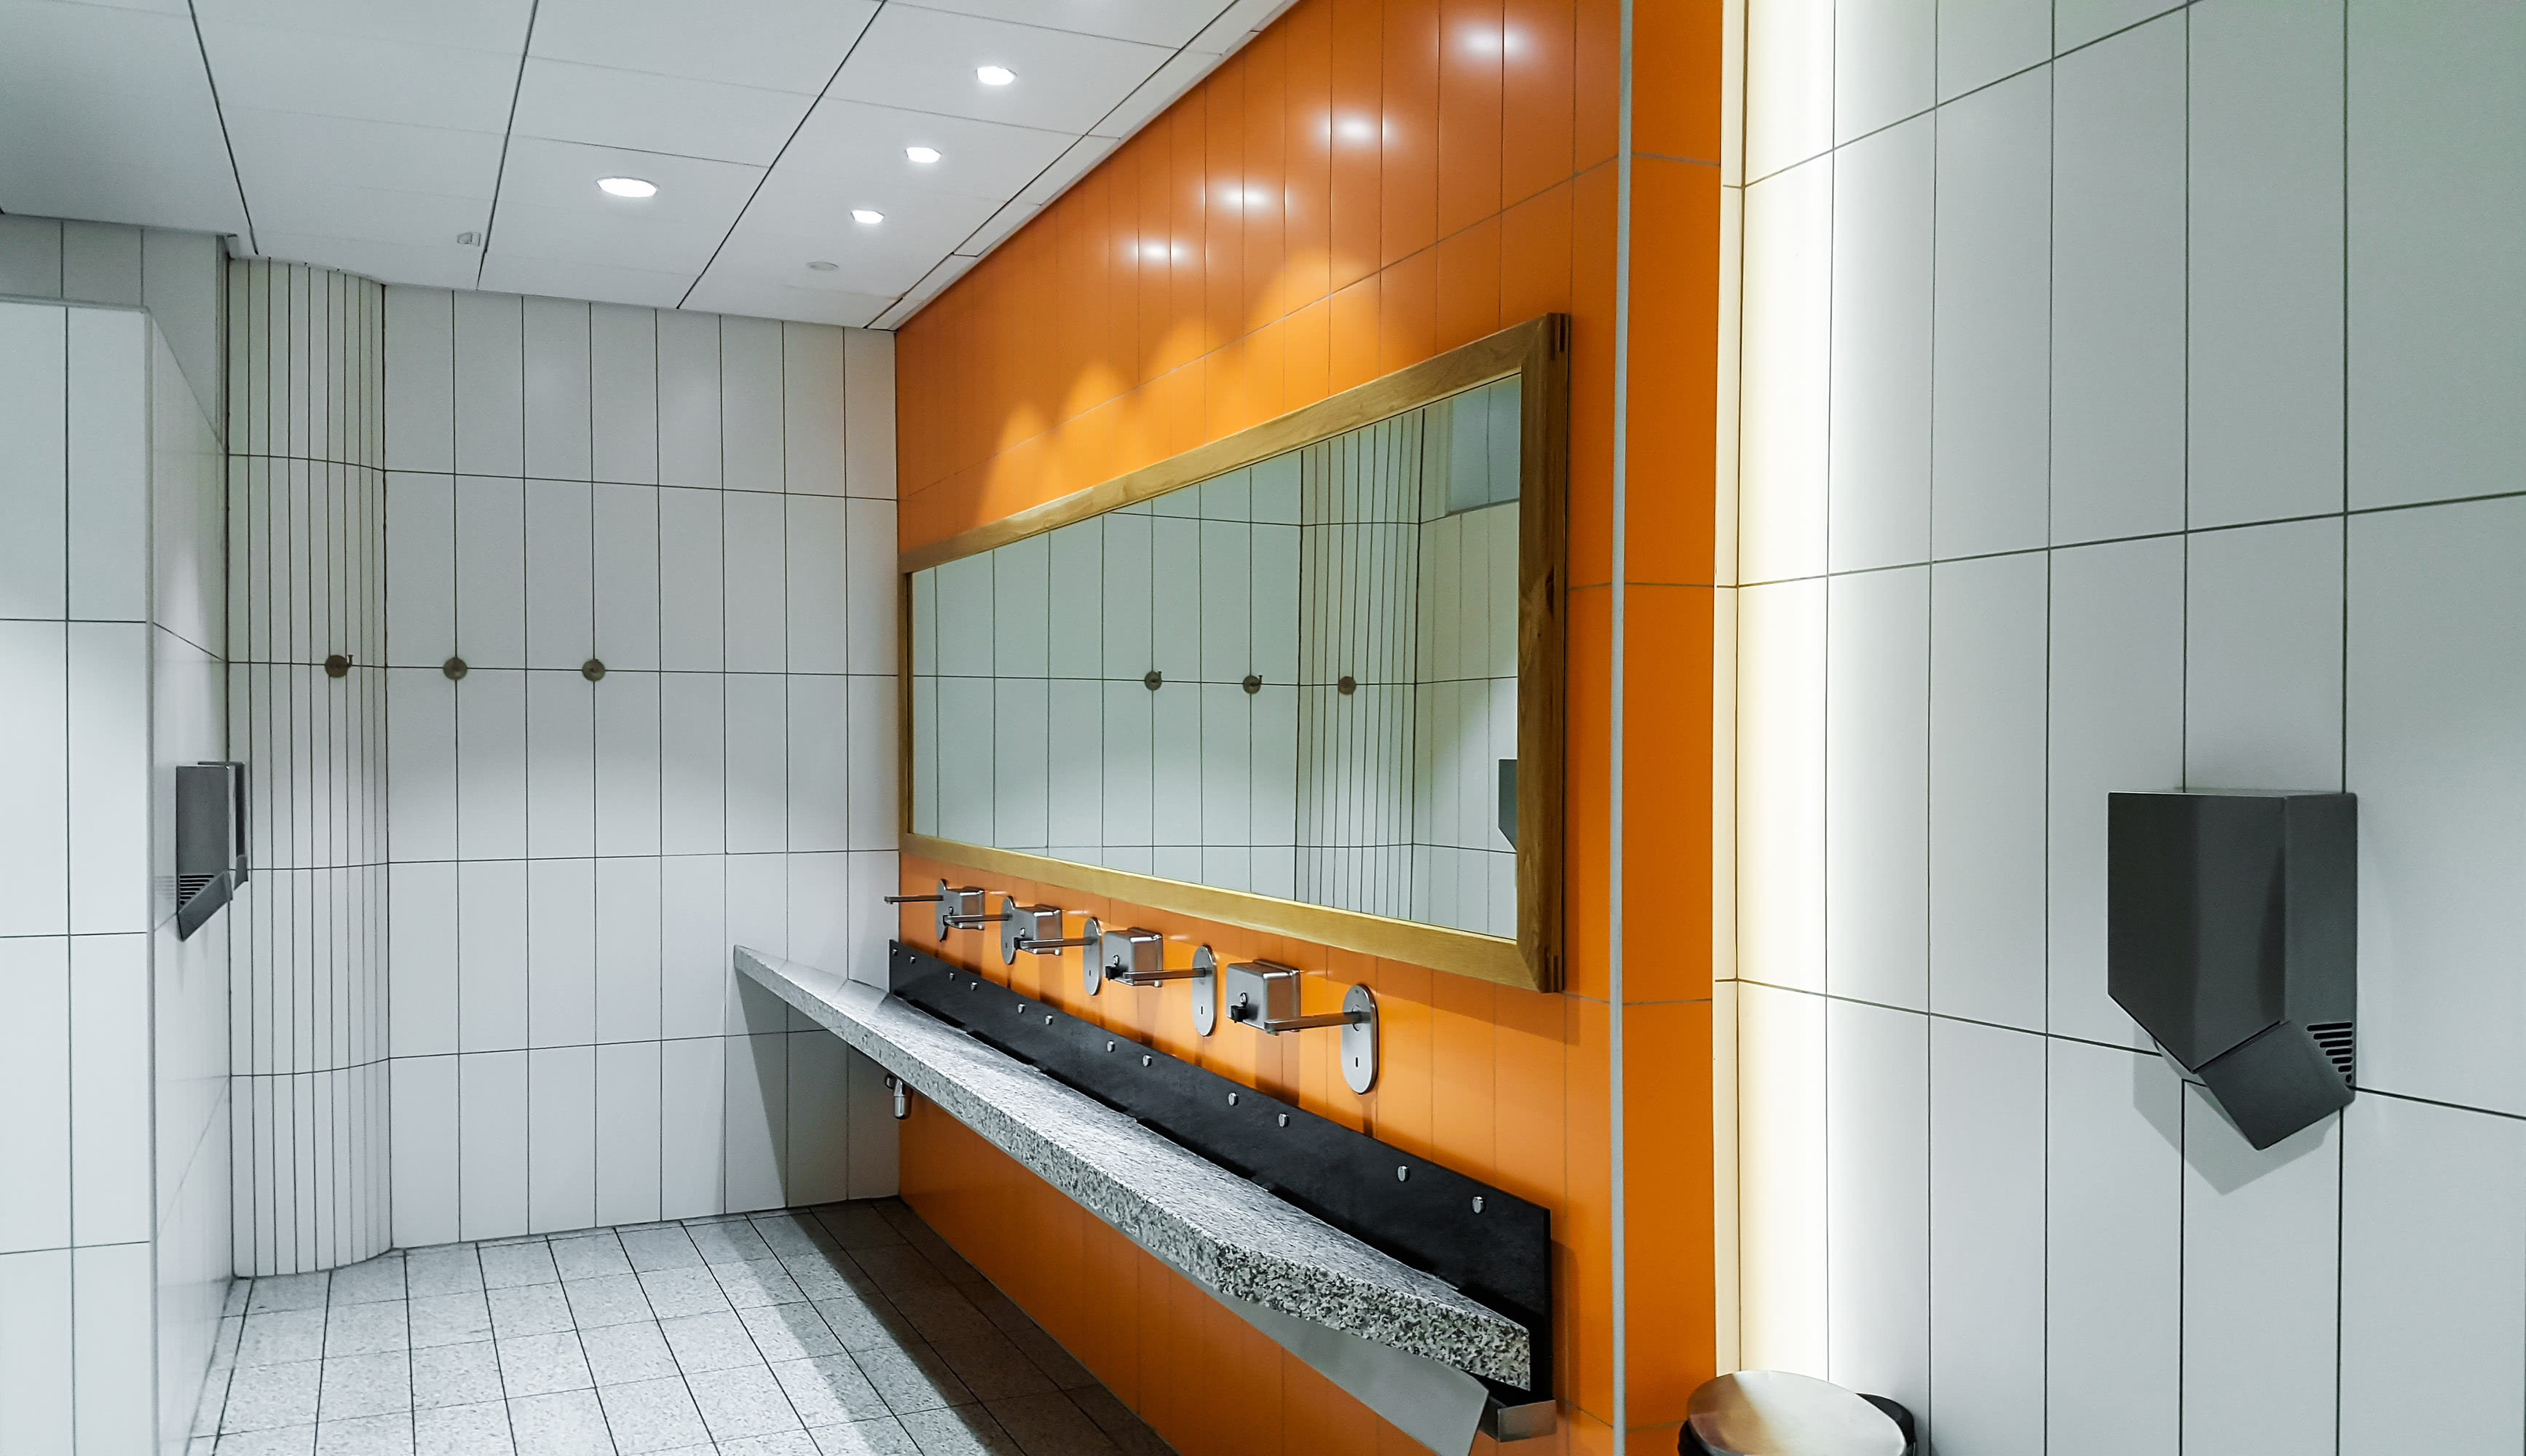 How To Choose And Install Access Panels For Plumbing Best Access Doors